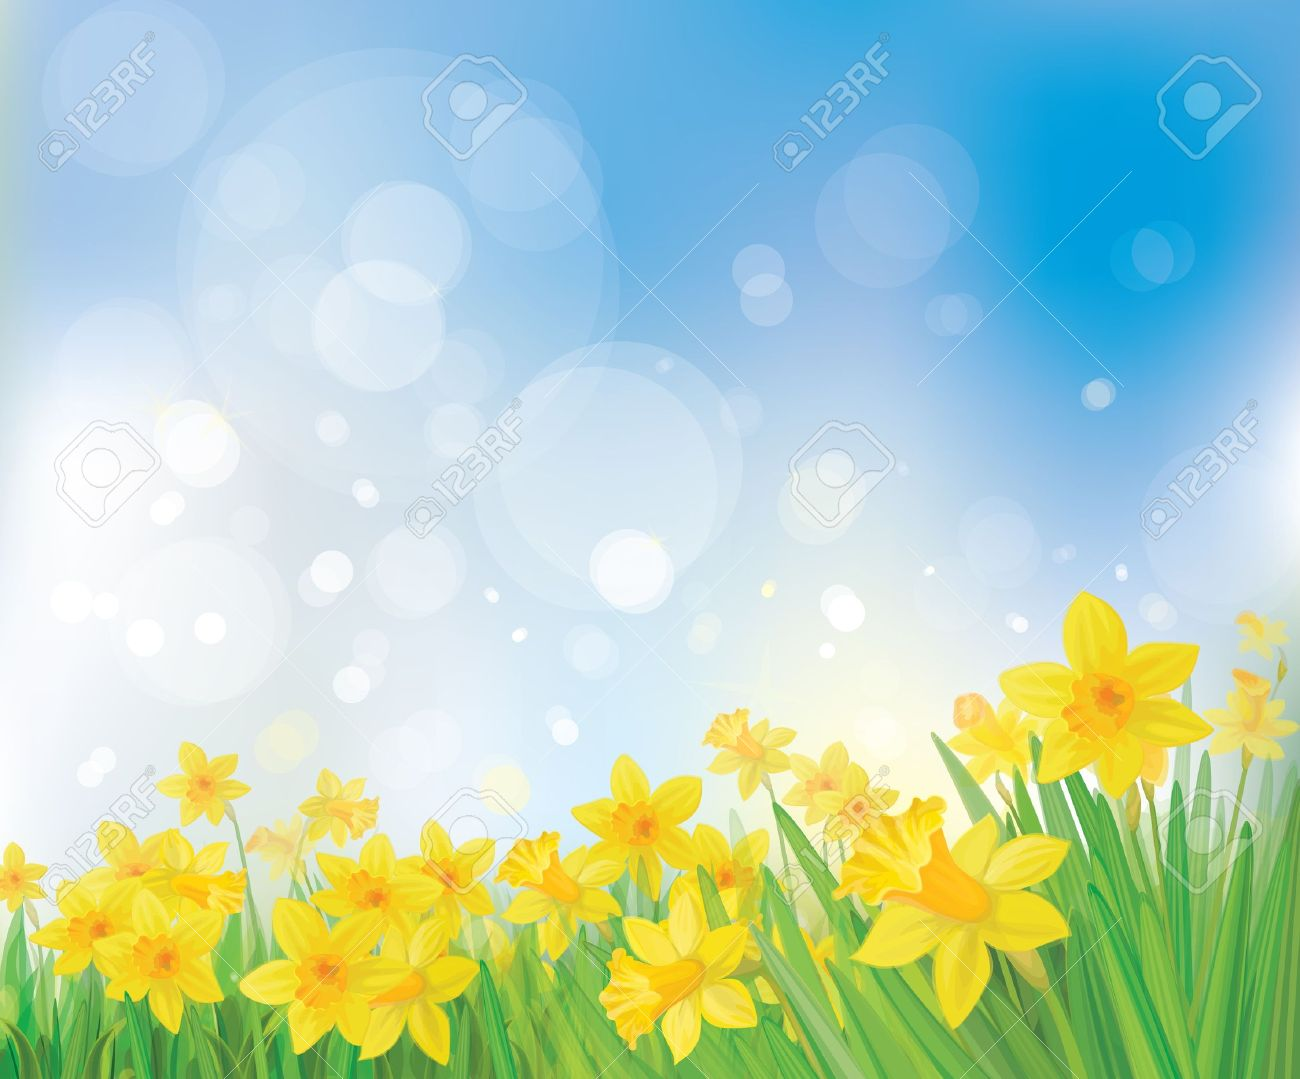 vector of daffodil flowers on spring background royalty free